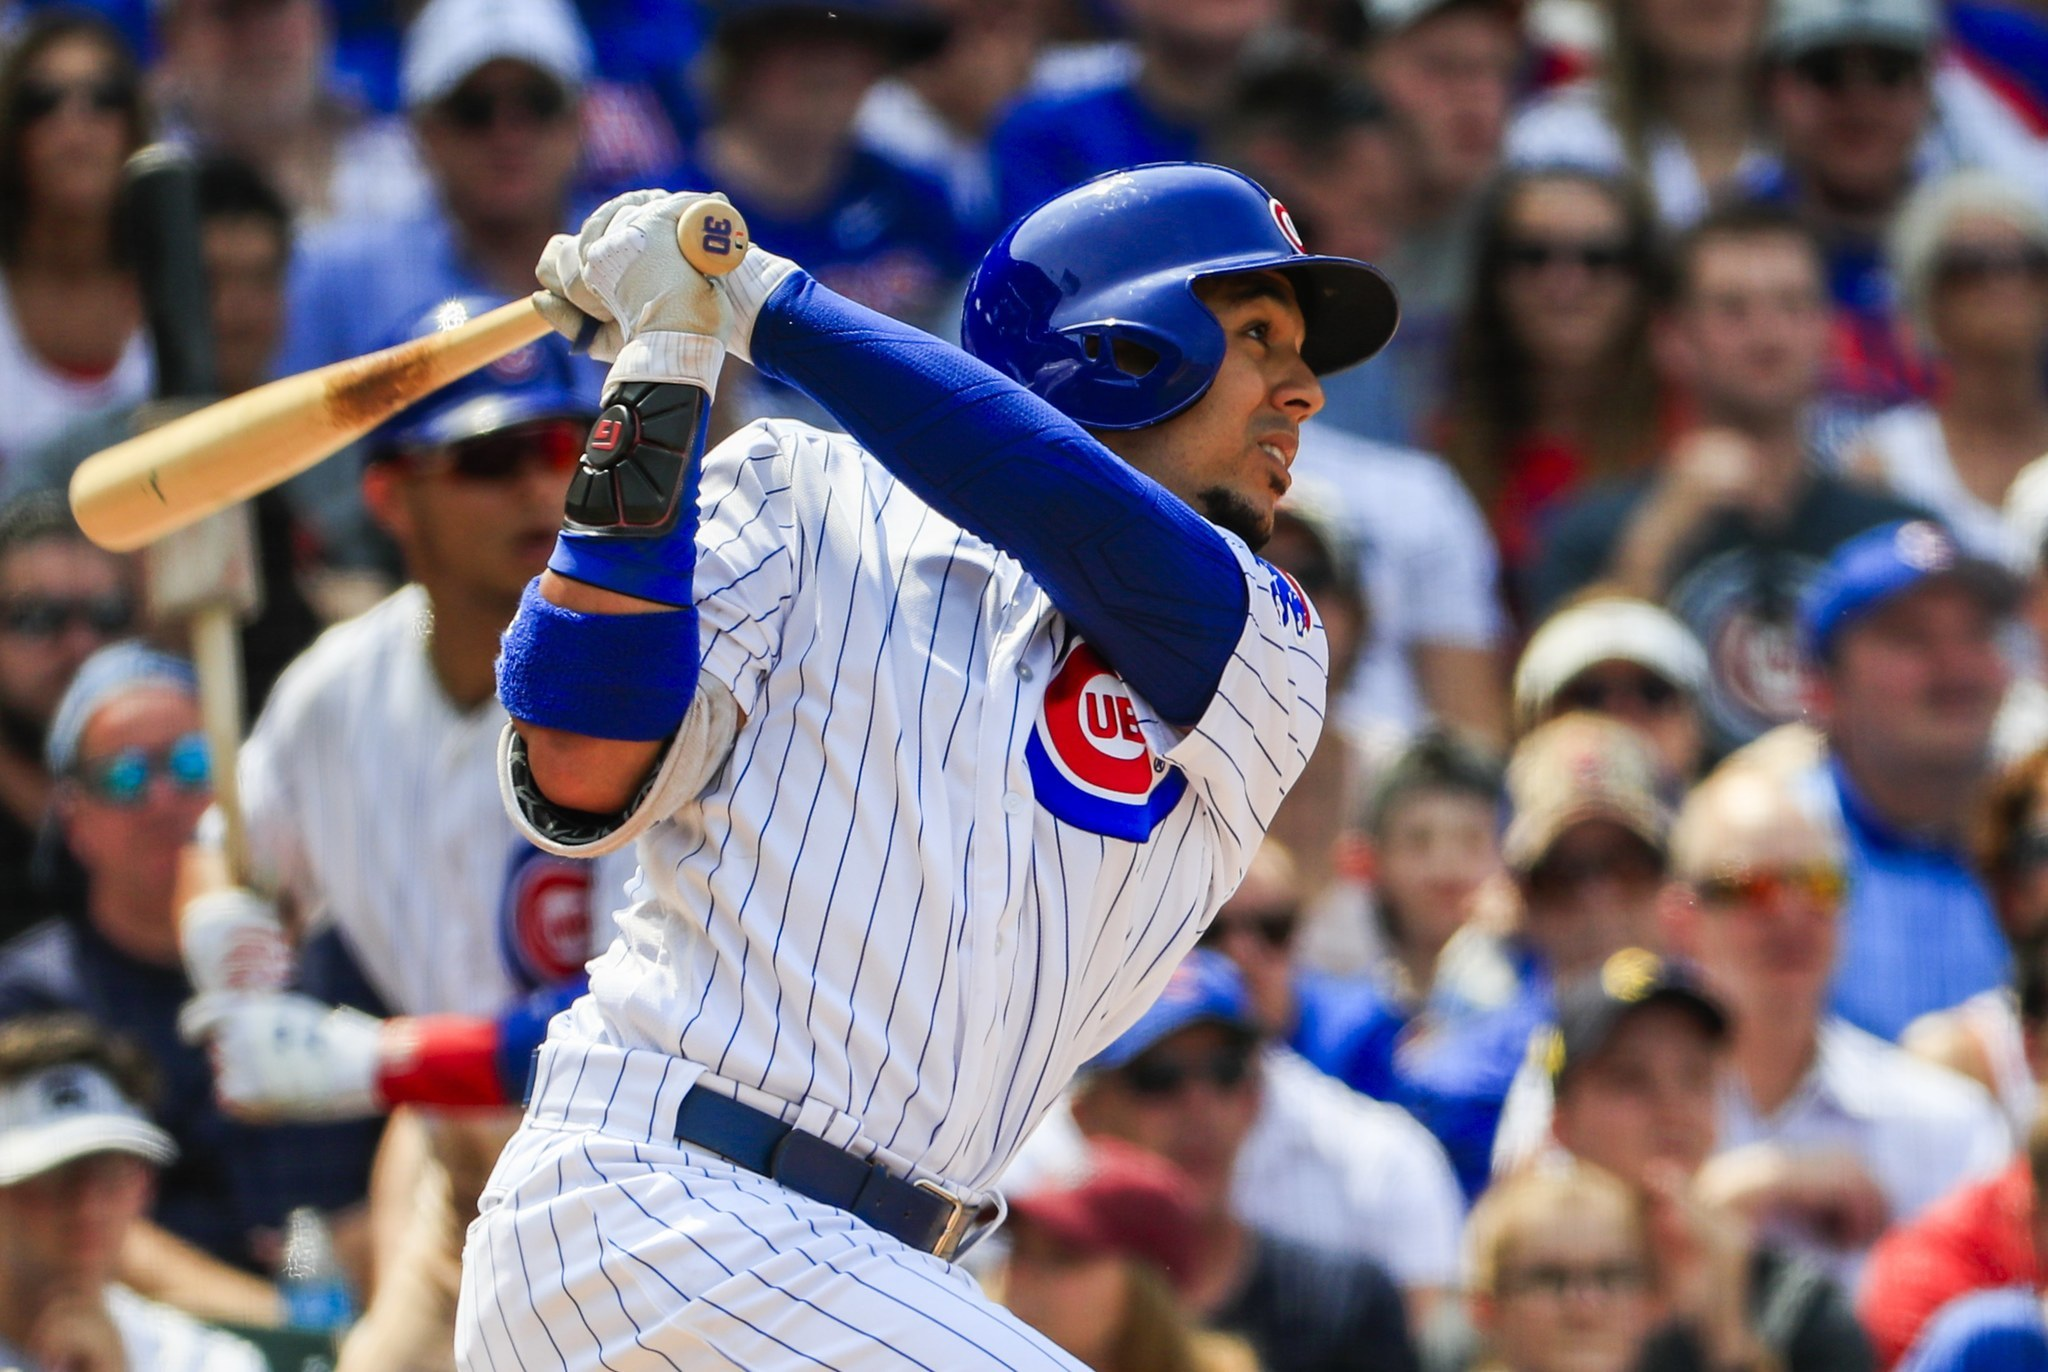 Ct-jon-jay-steady-influence-cubs-spt-0713-20170712